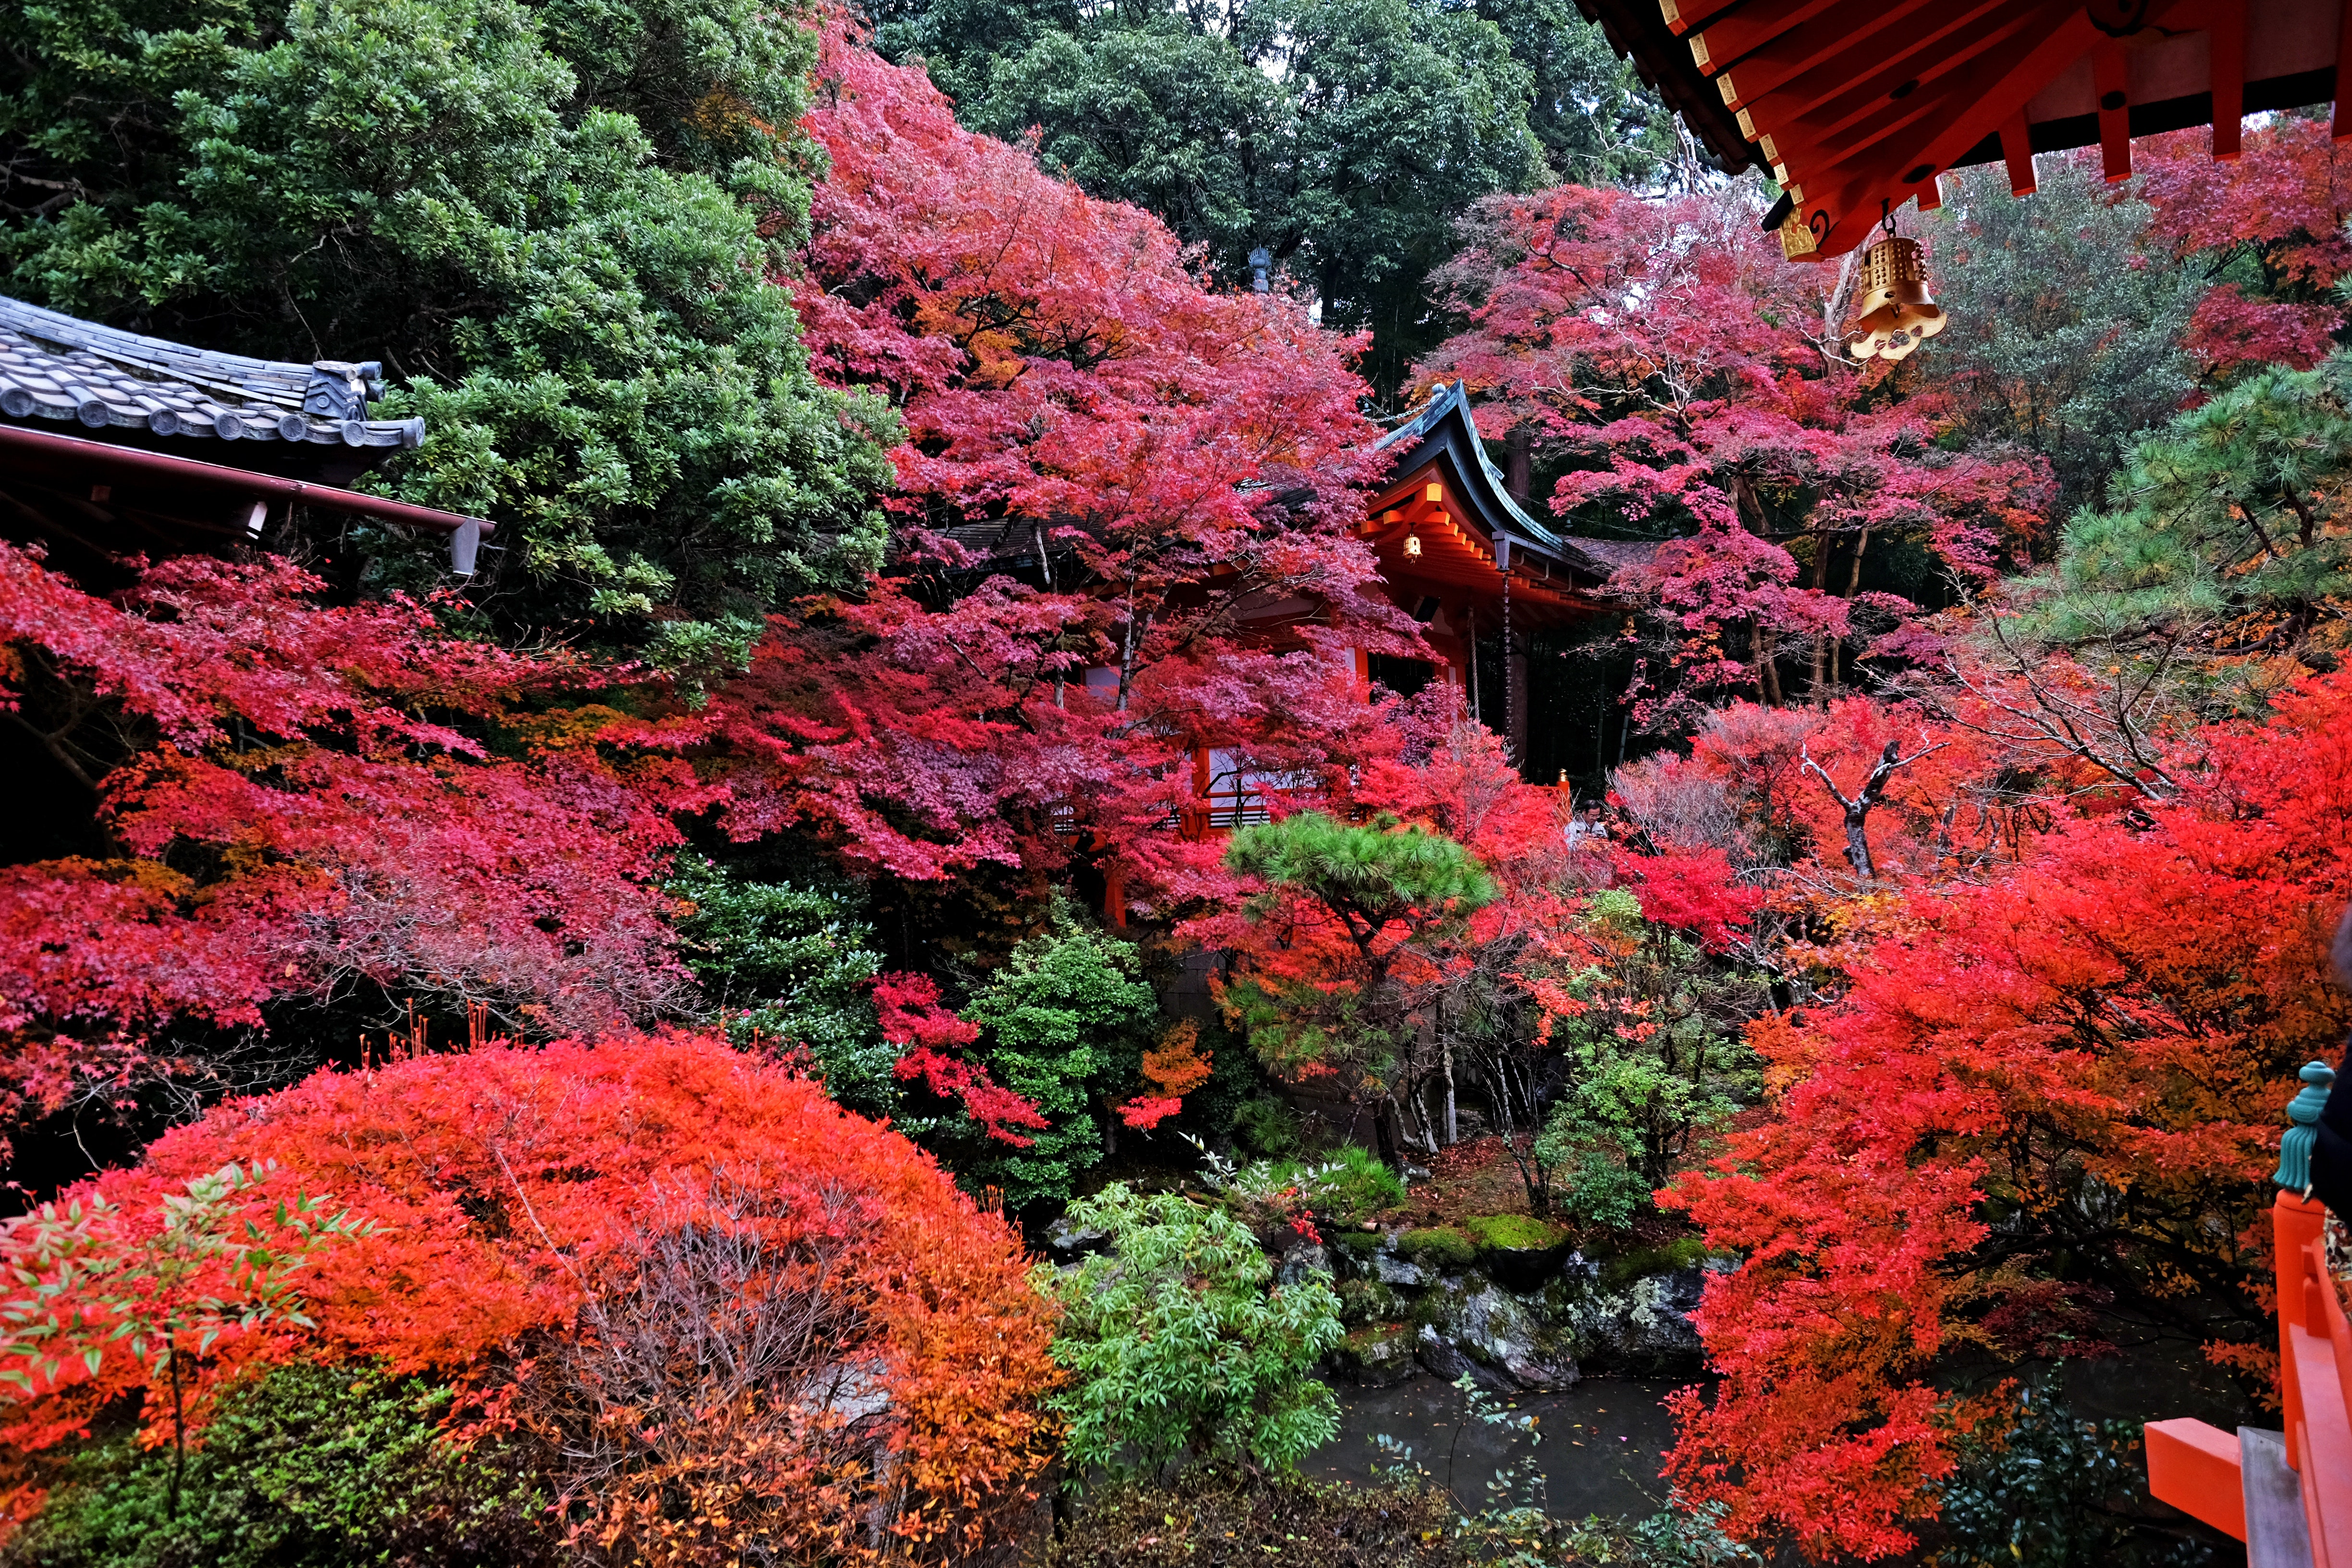 103869 download wallpaper Nature, Autumn, Japan, Temple, Kyoto screensavers and pictures for free